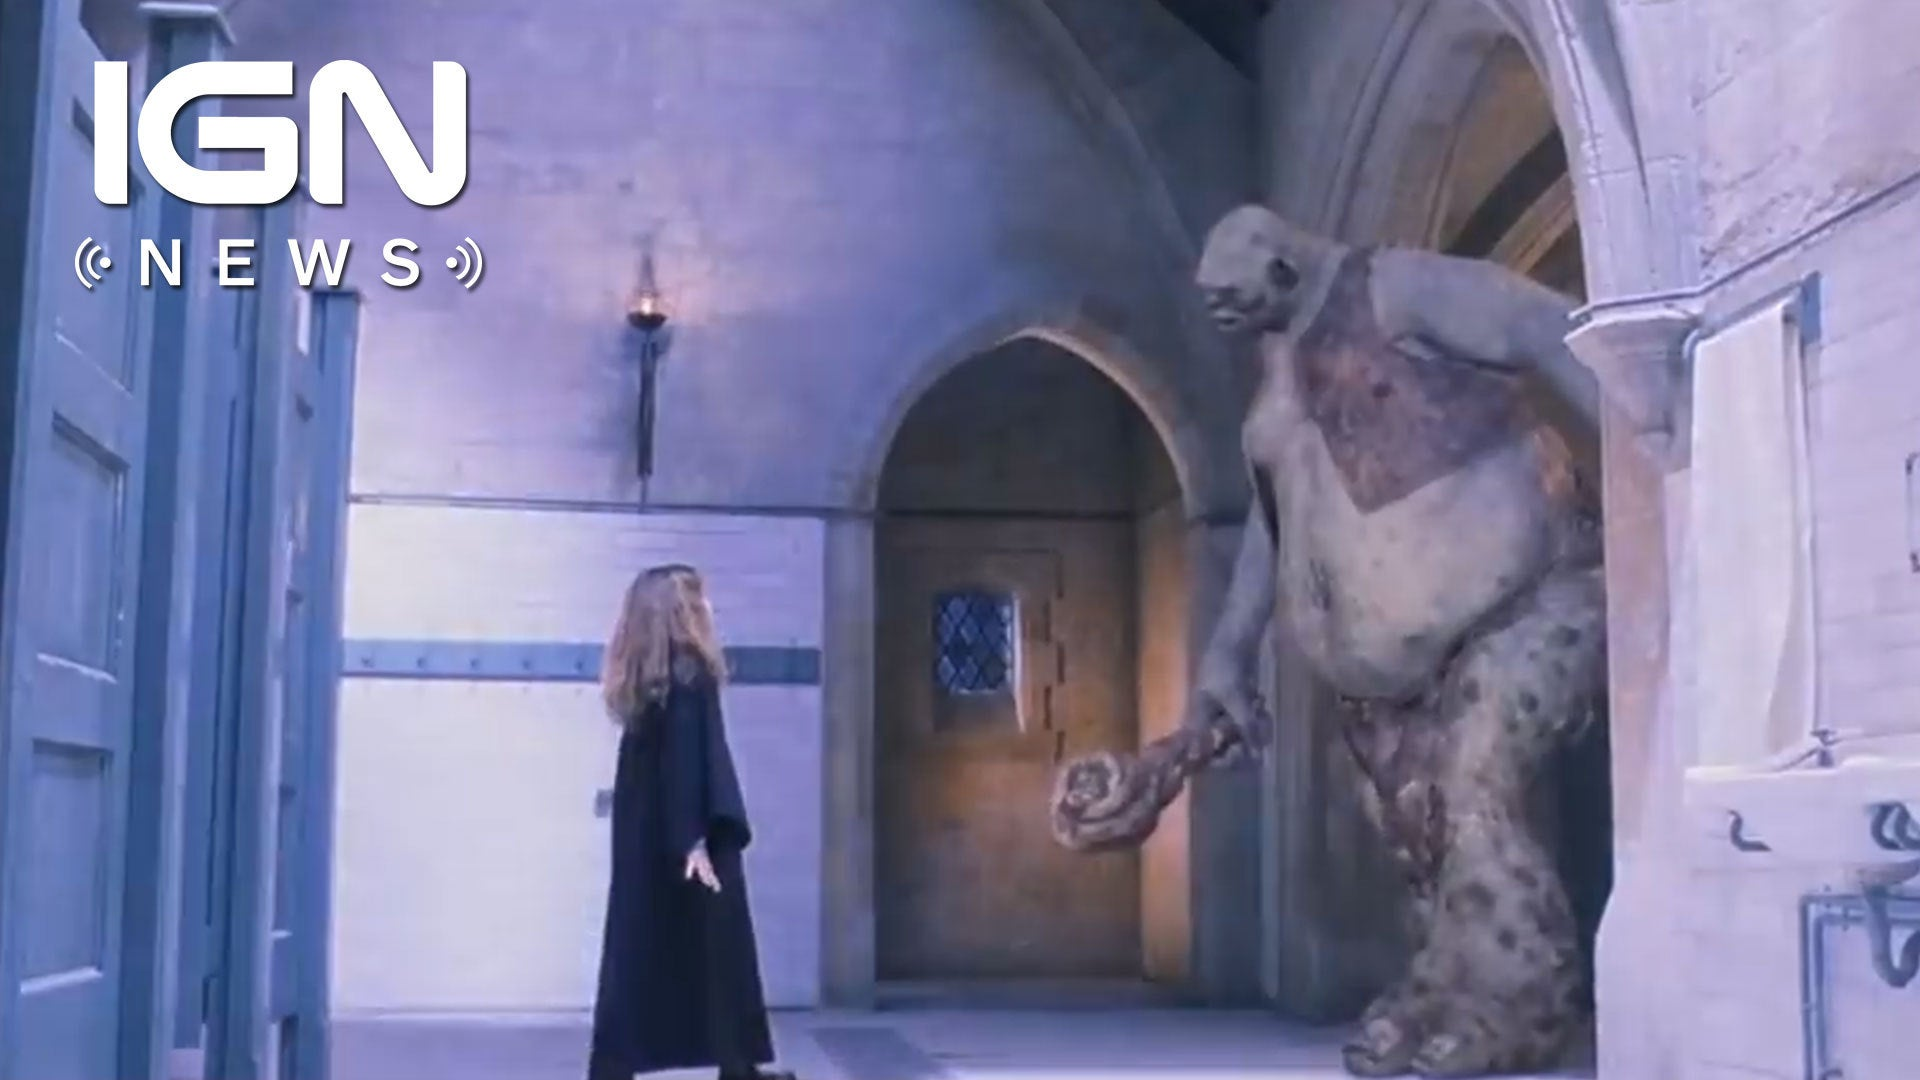 Diagon Alley Webcast Highlights Ign